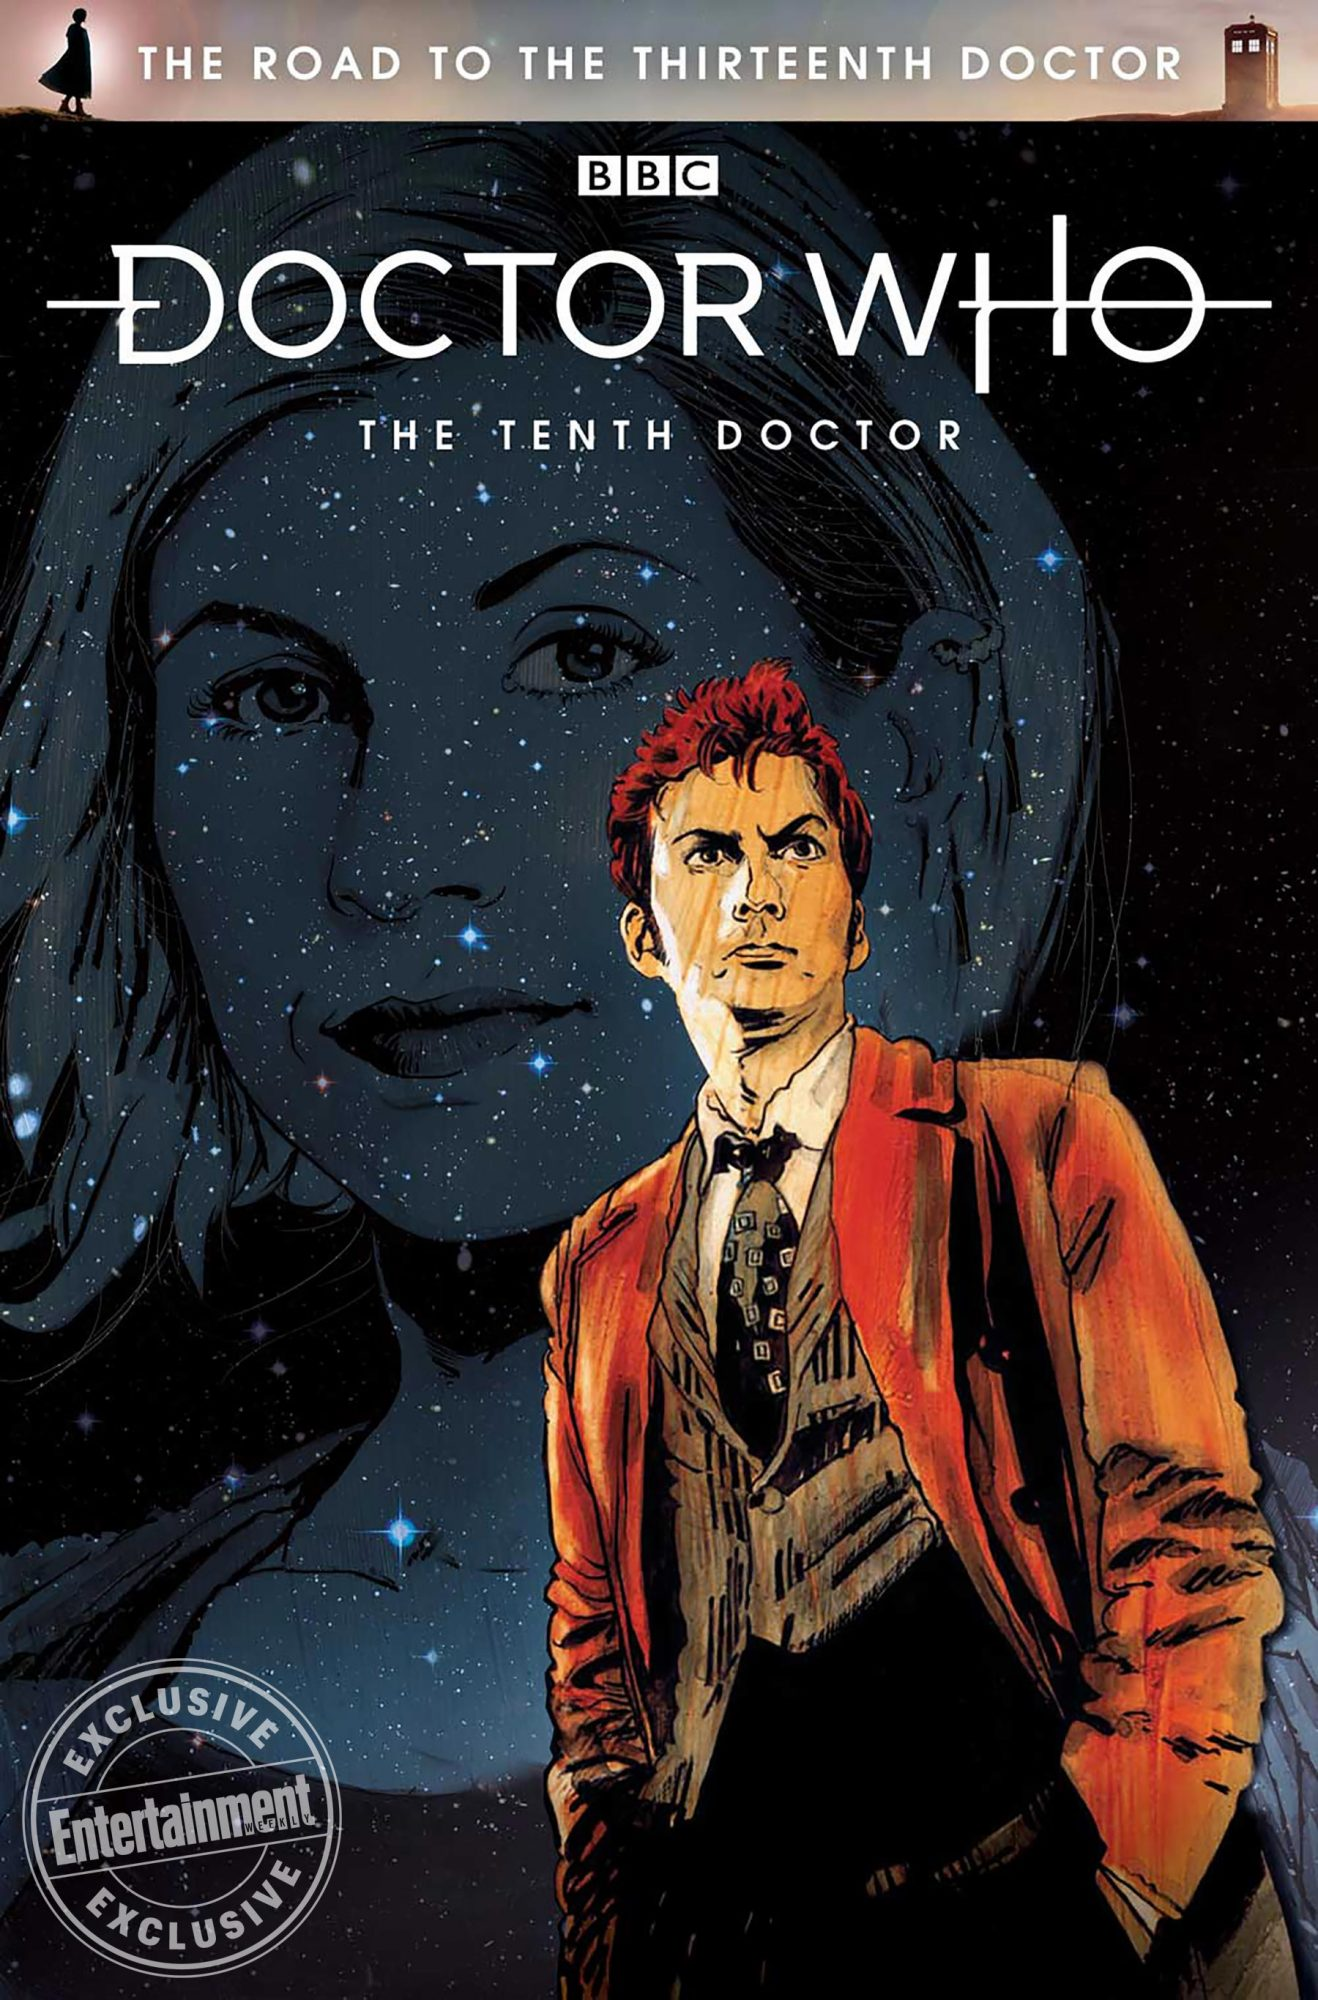 The Road to the Thirteenth Doctor CR: Titan Comics and BBC Studios